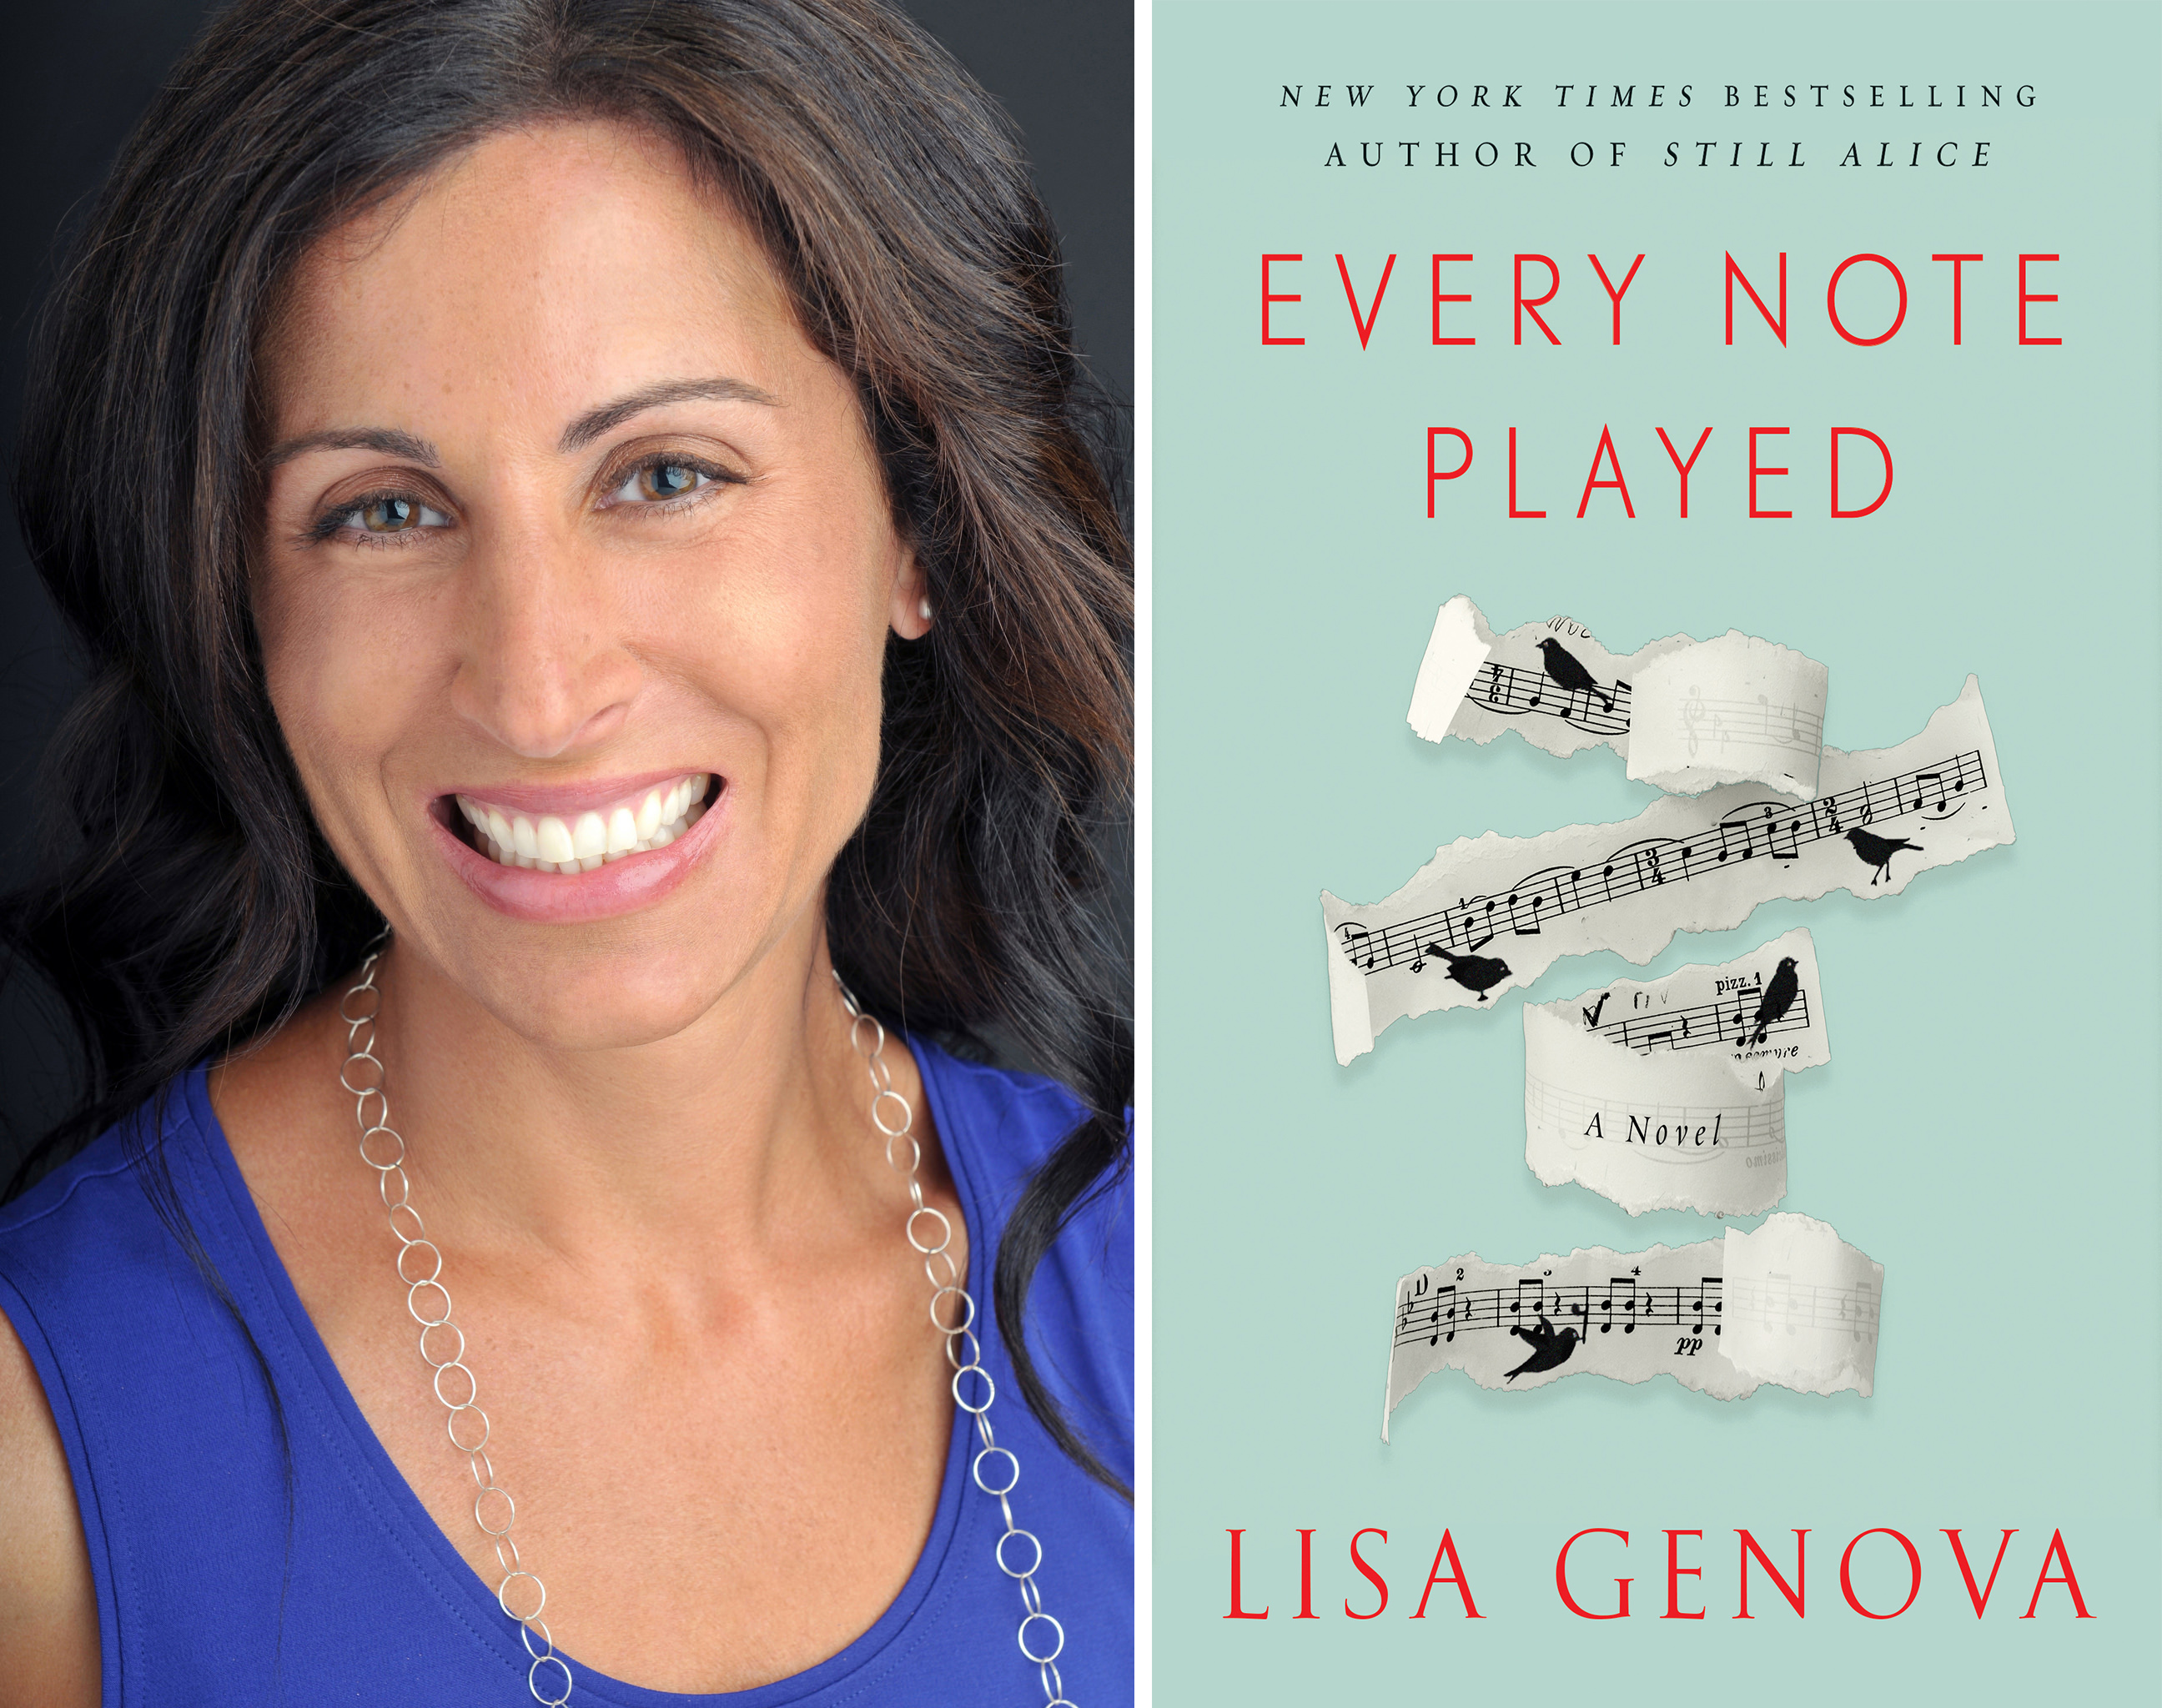 image of lisa genova next to her book